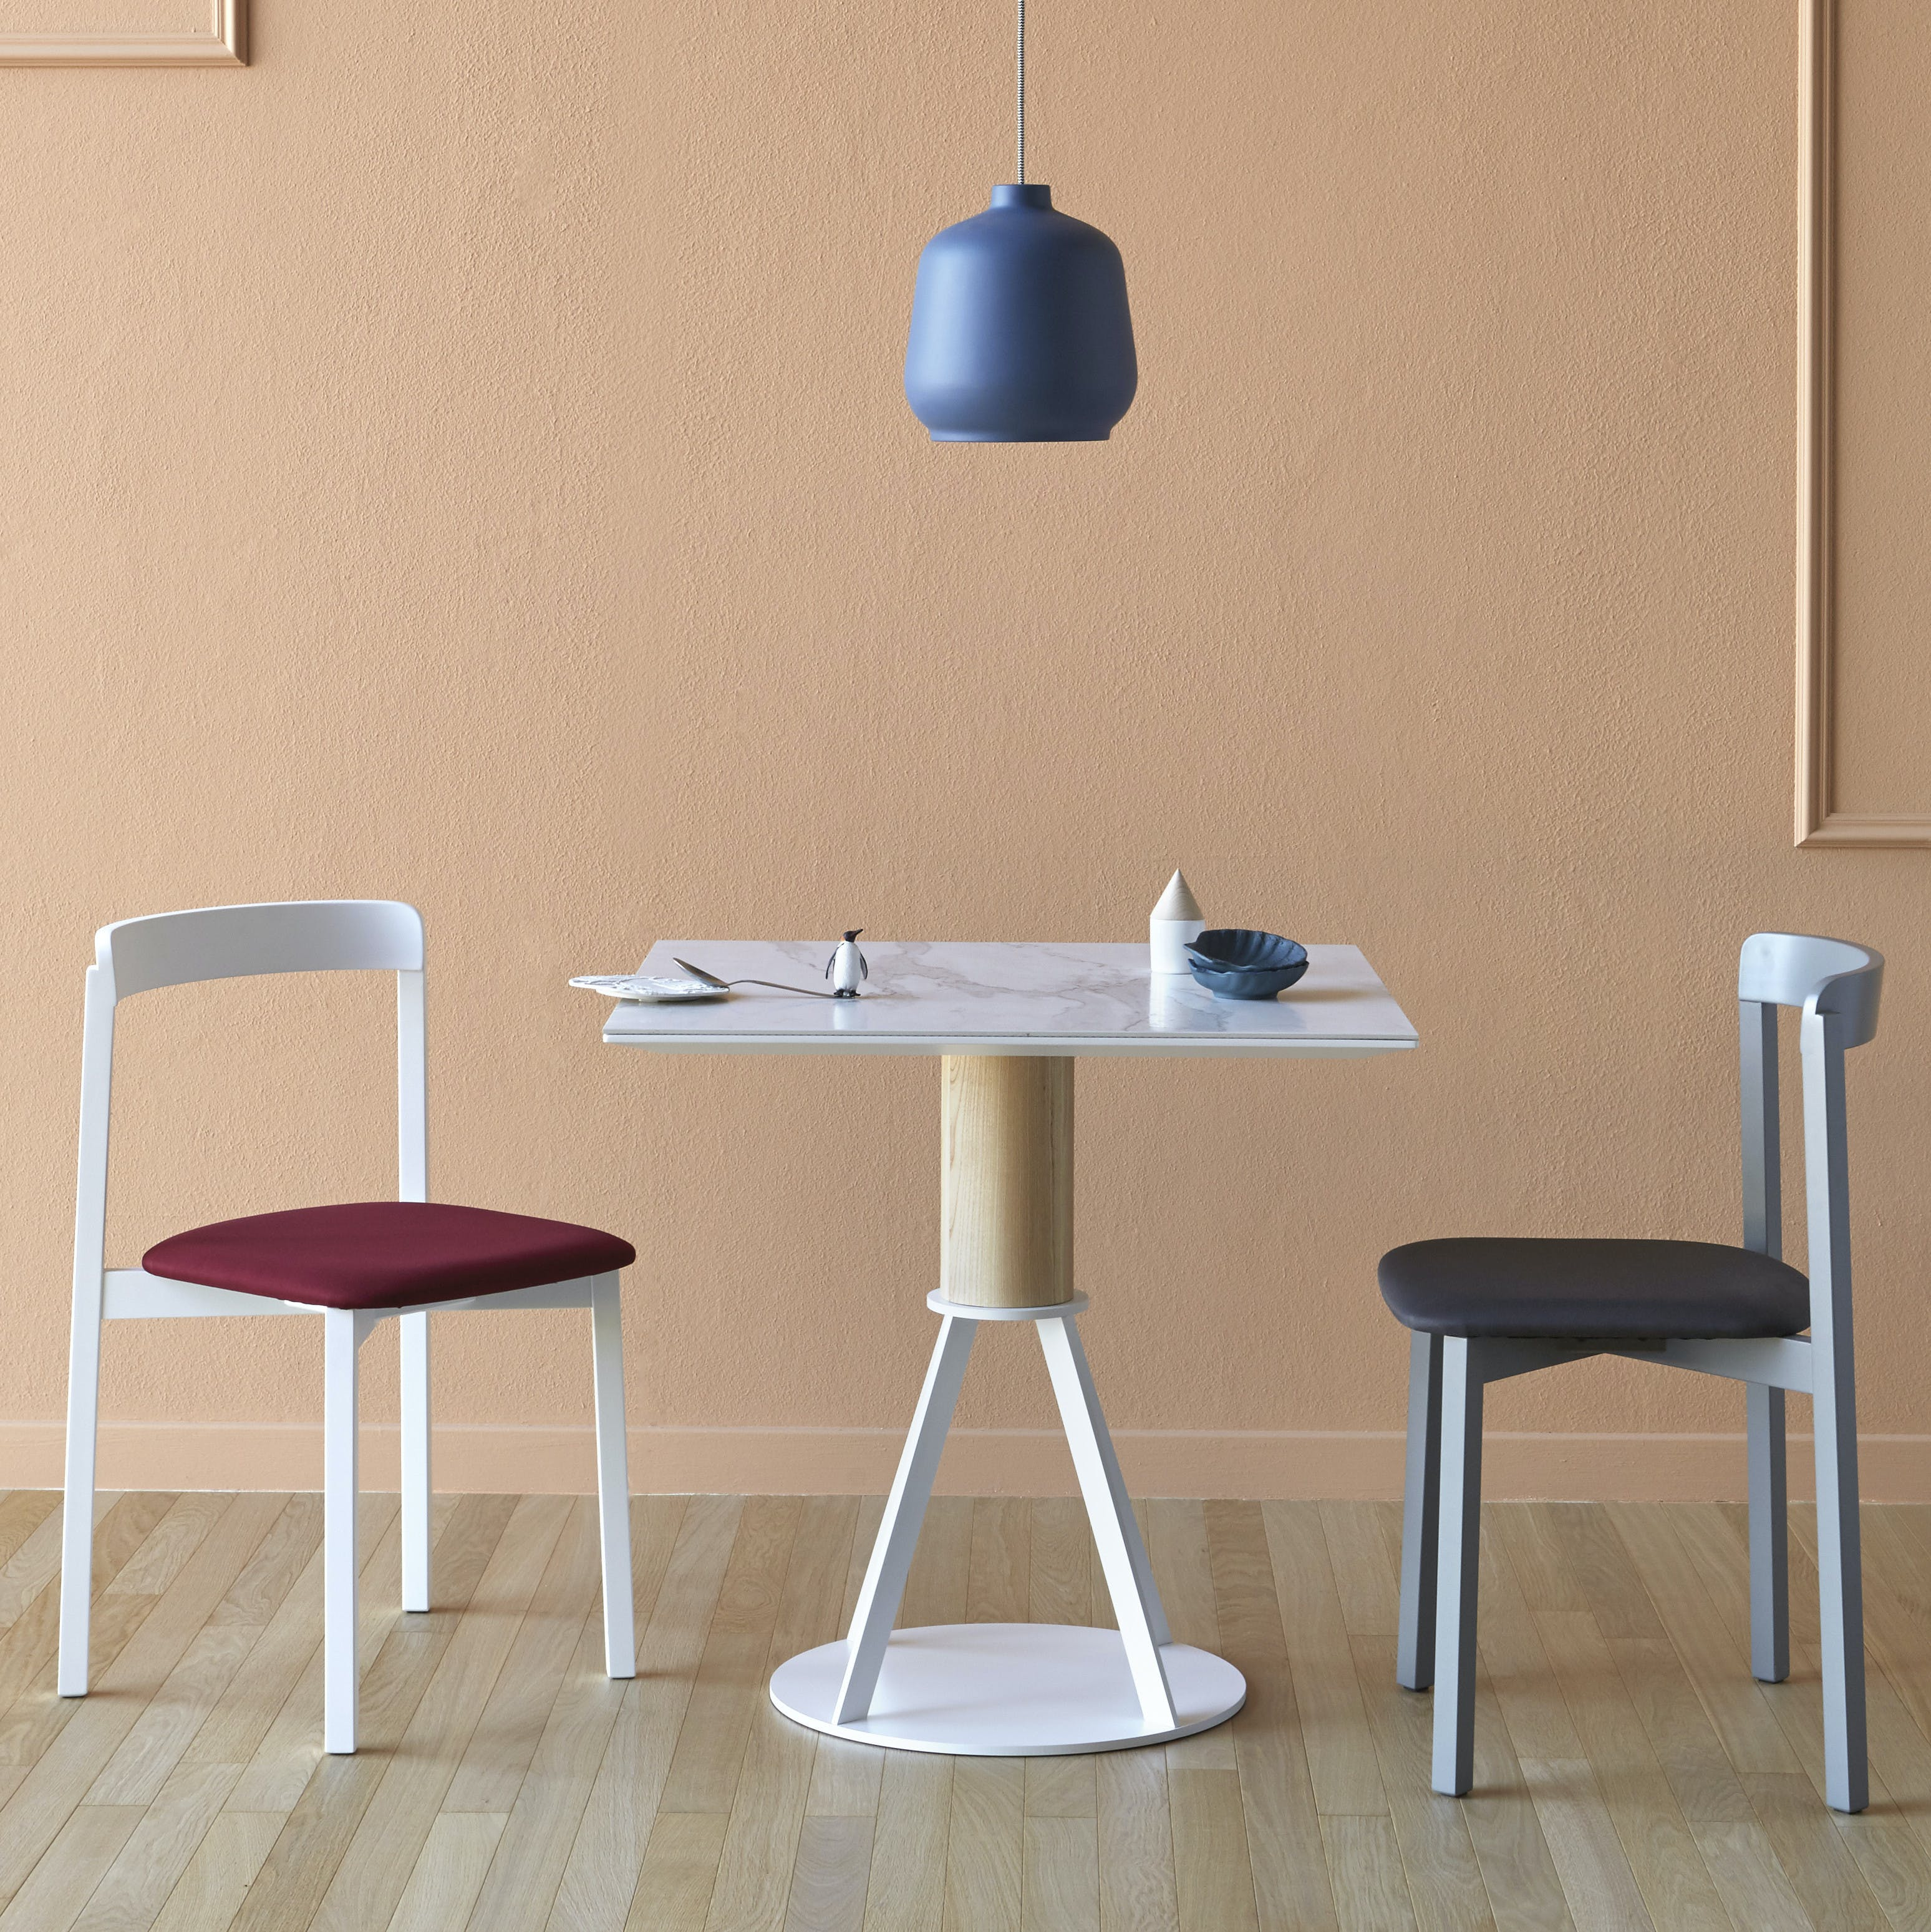 Miniforms Geronimo Table Insitu Chair Haute Living